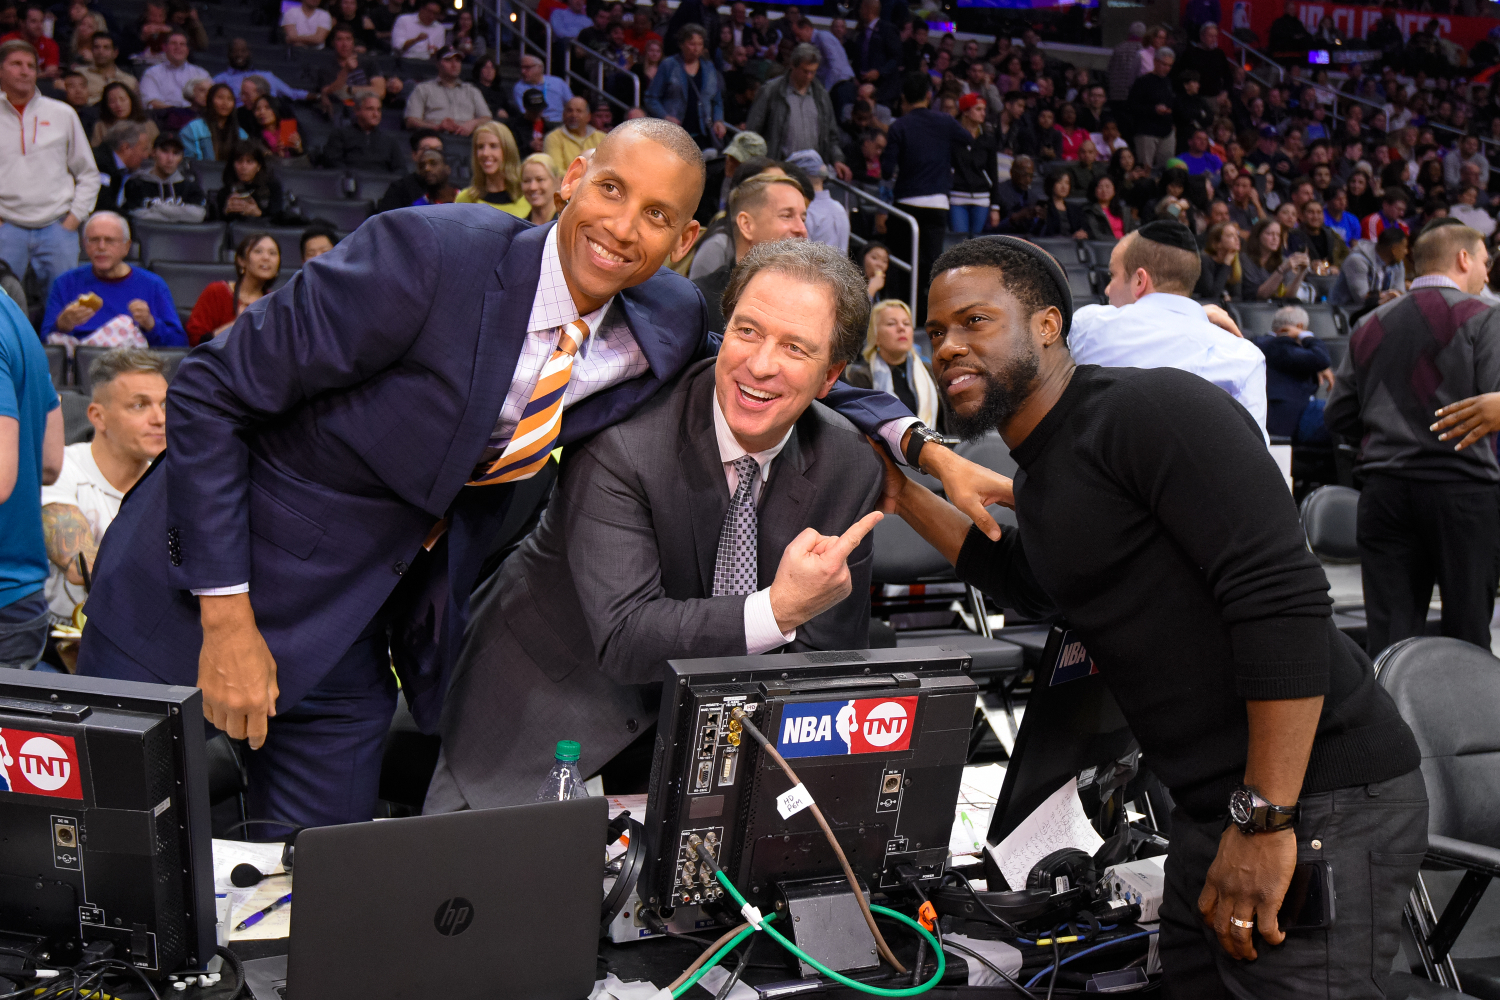 Kevin Harlan has become one of the top announcers in the NFL and the NBA.